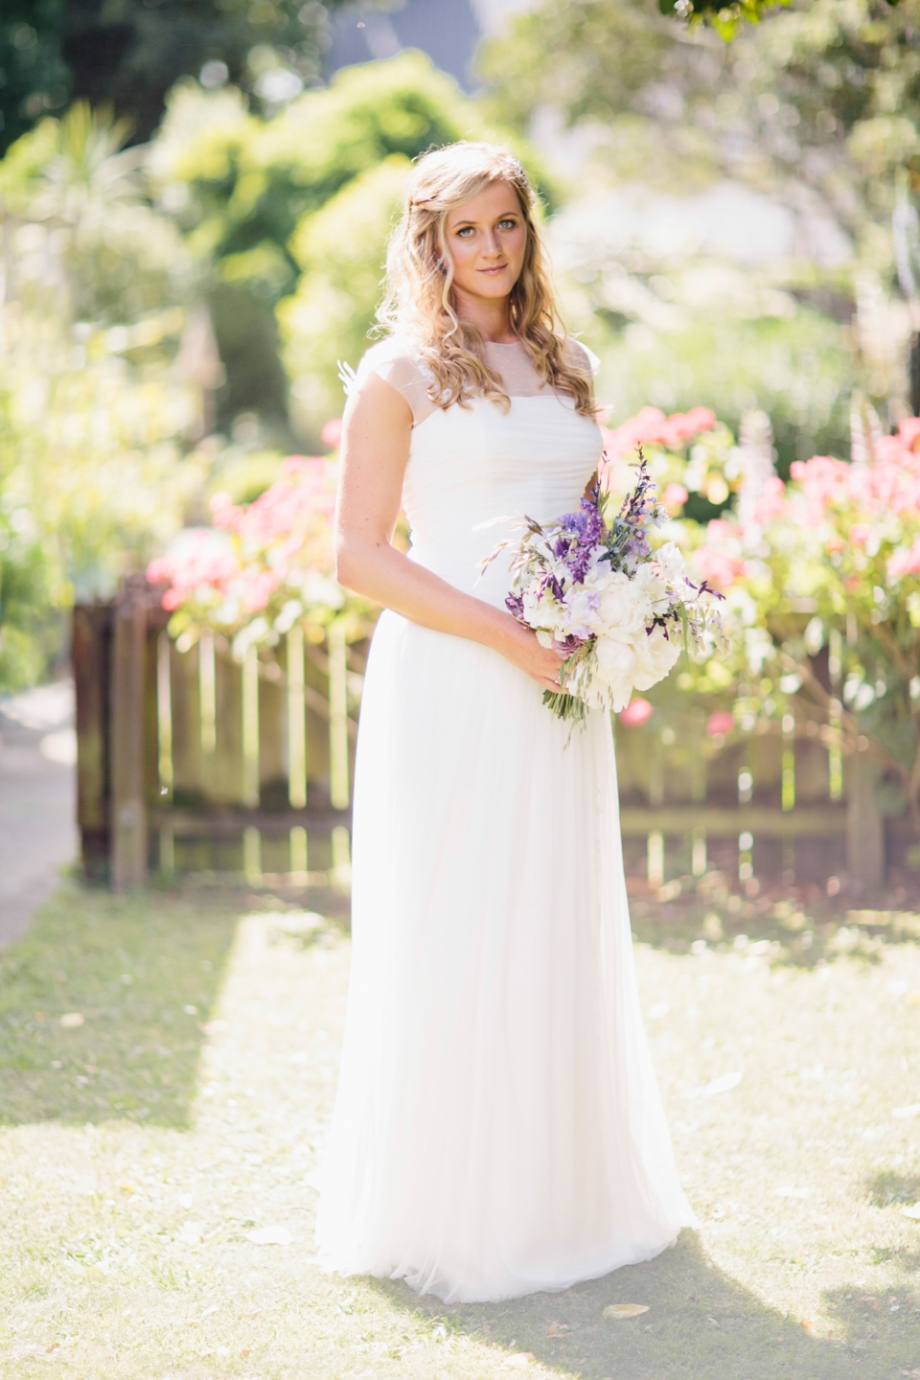 Short sleeved wedding dress, martinborough photography